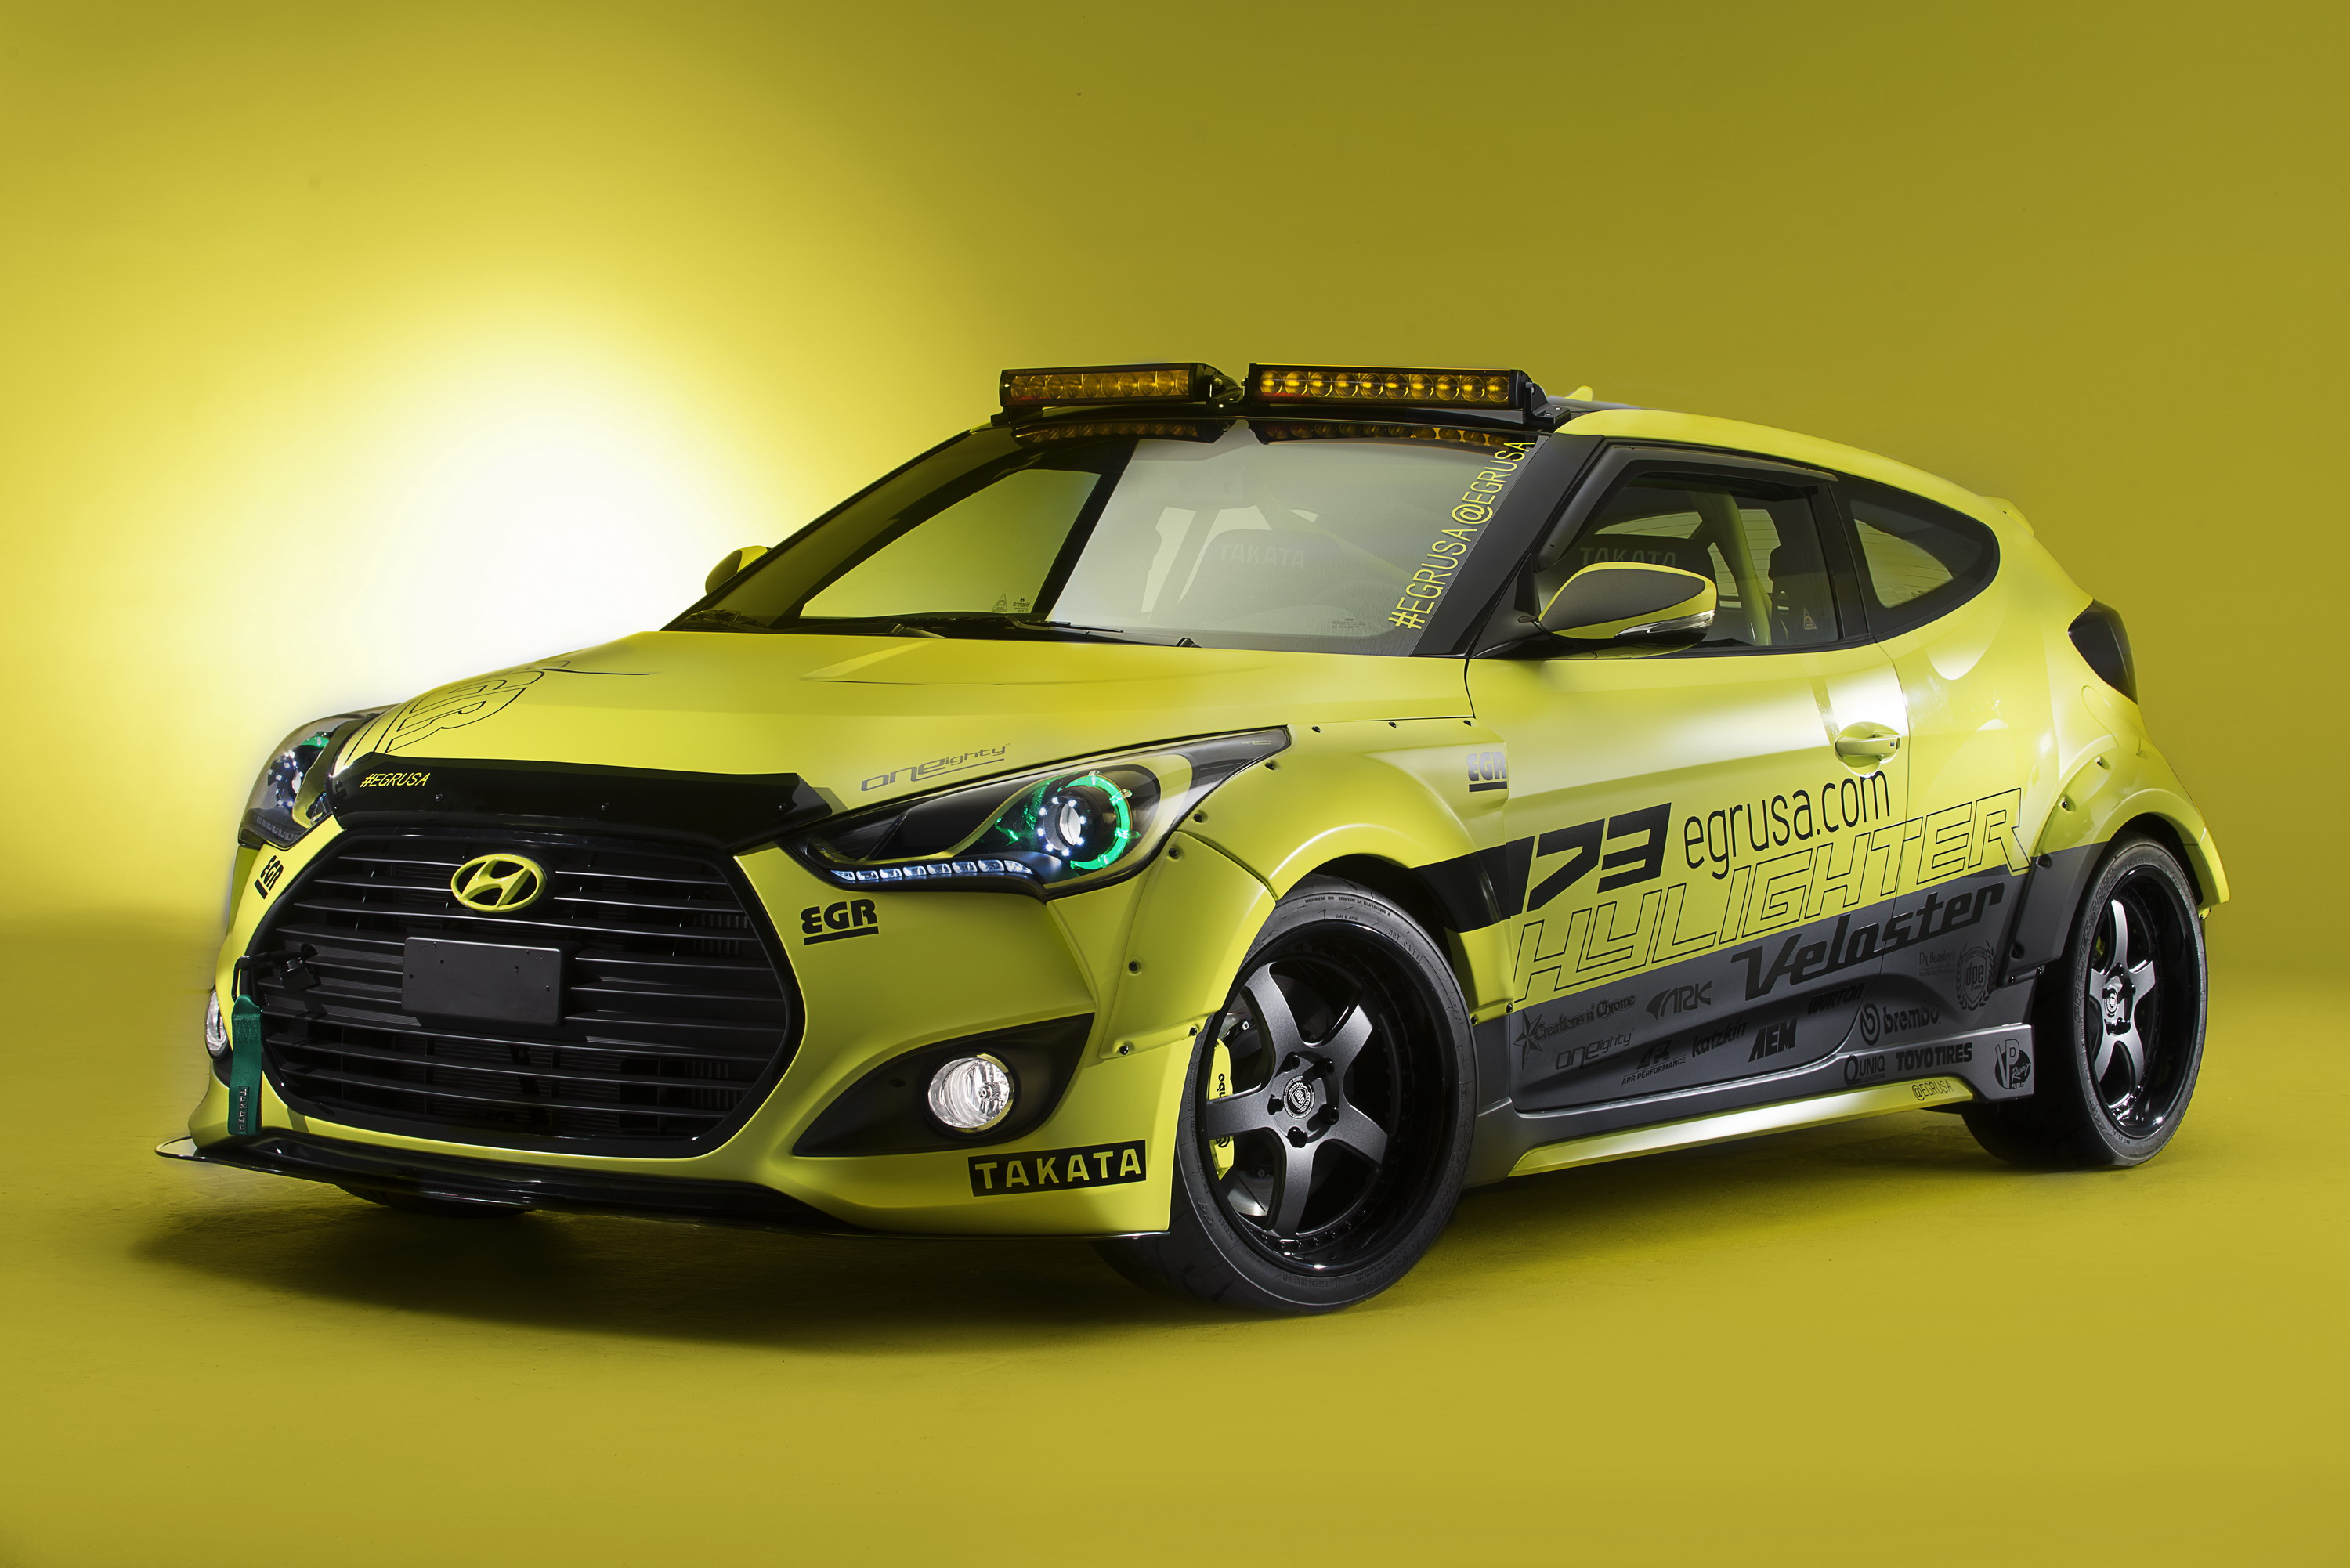 2013 hyundai veloster night racer concept by egr group top speed. Black Bedroom Furniture Sets. Home Design Ideas